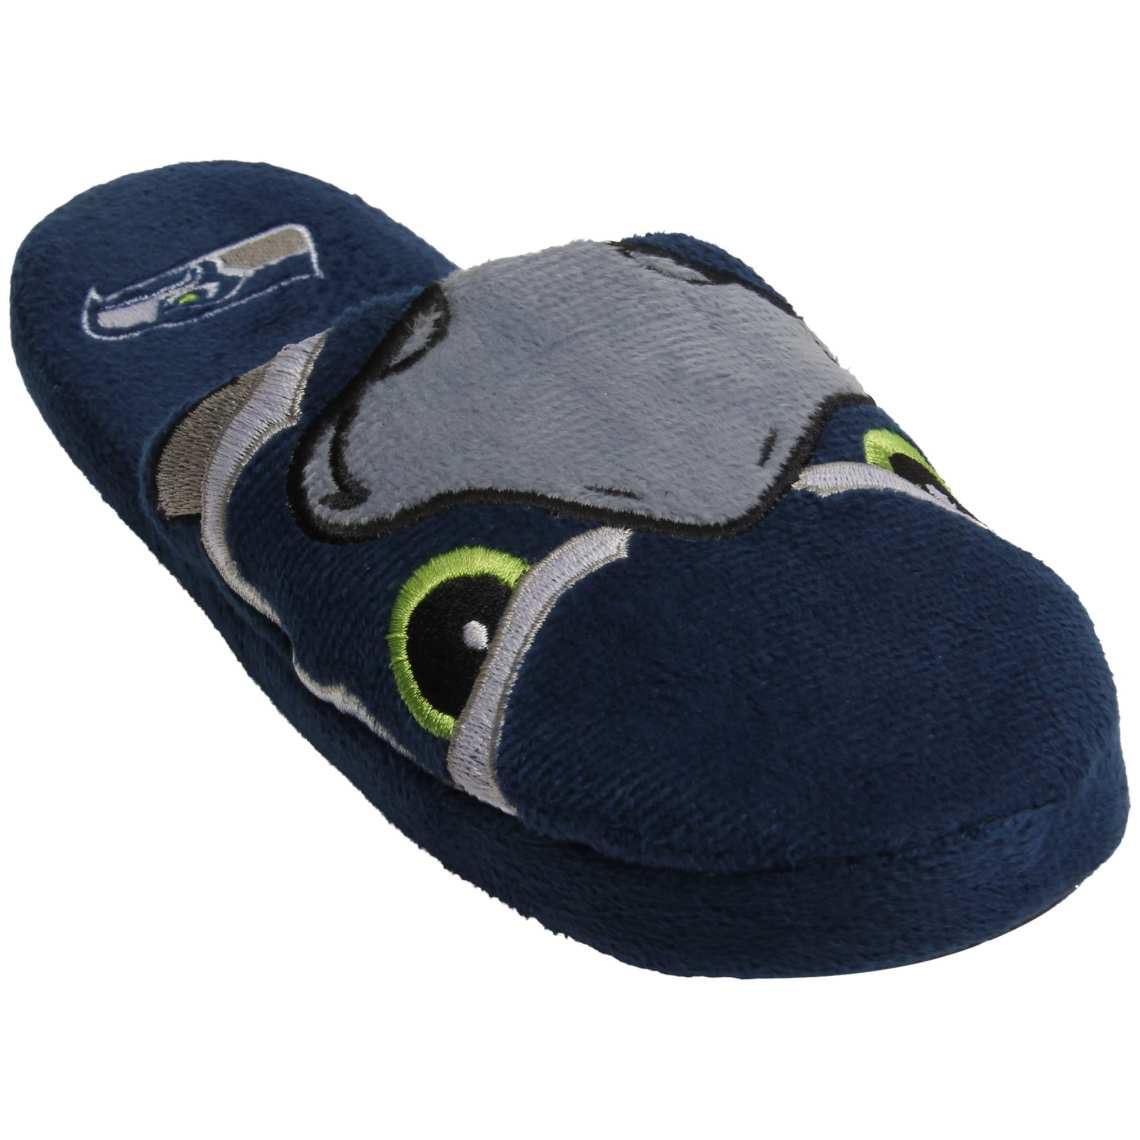 Youth Seattle Seahawks Mascot Slippers